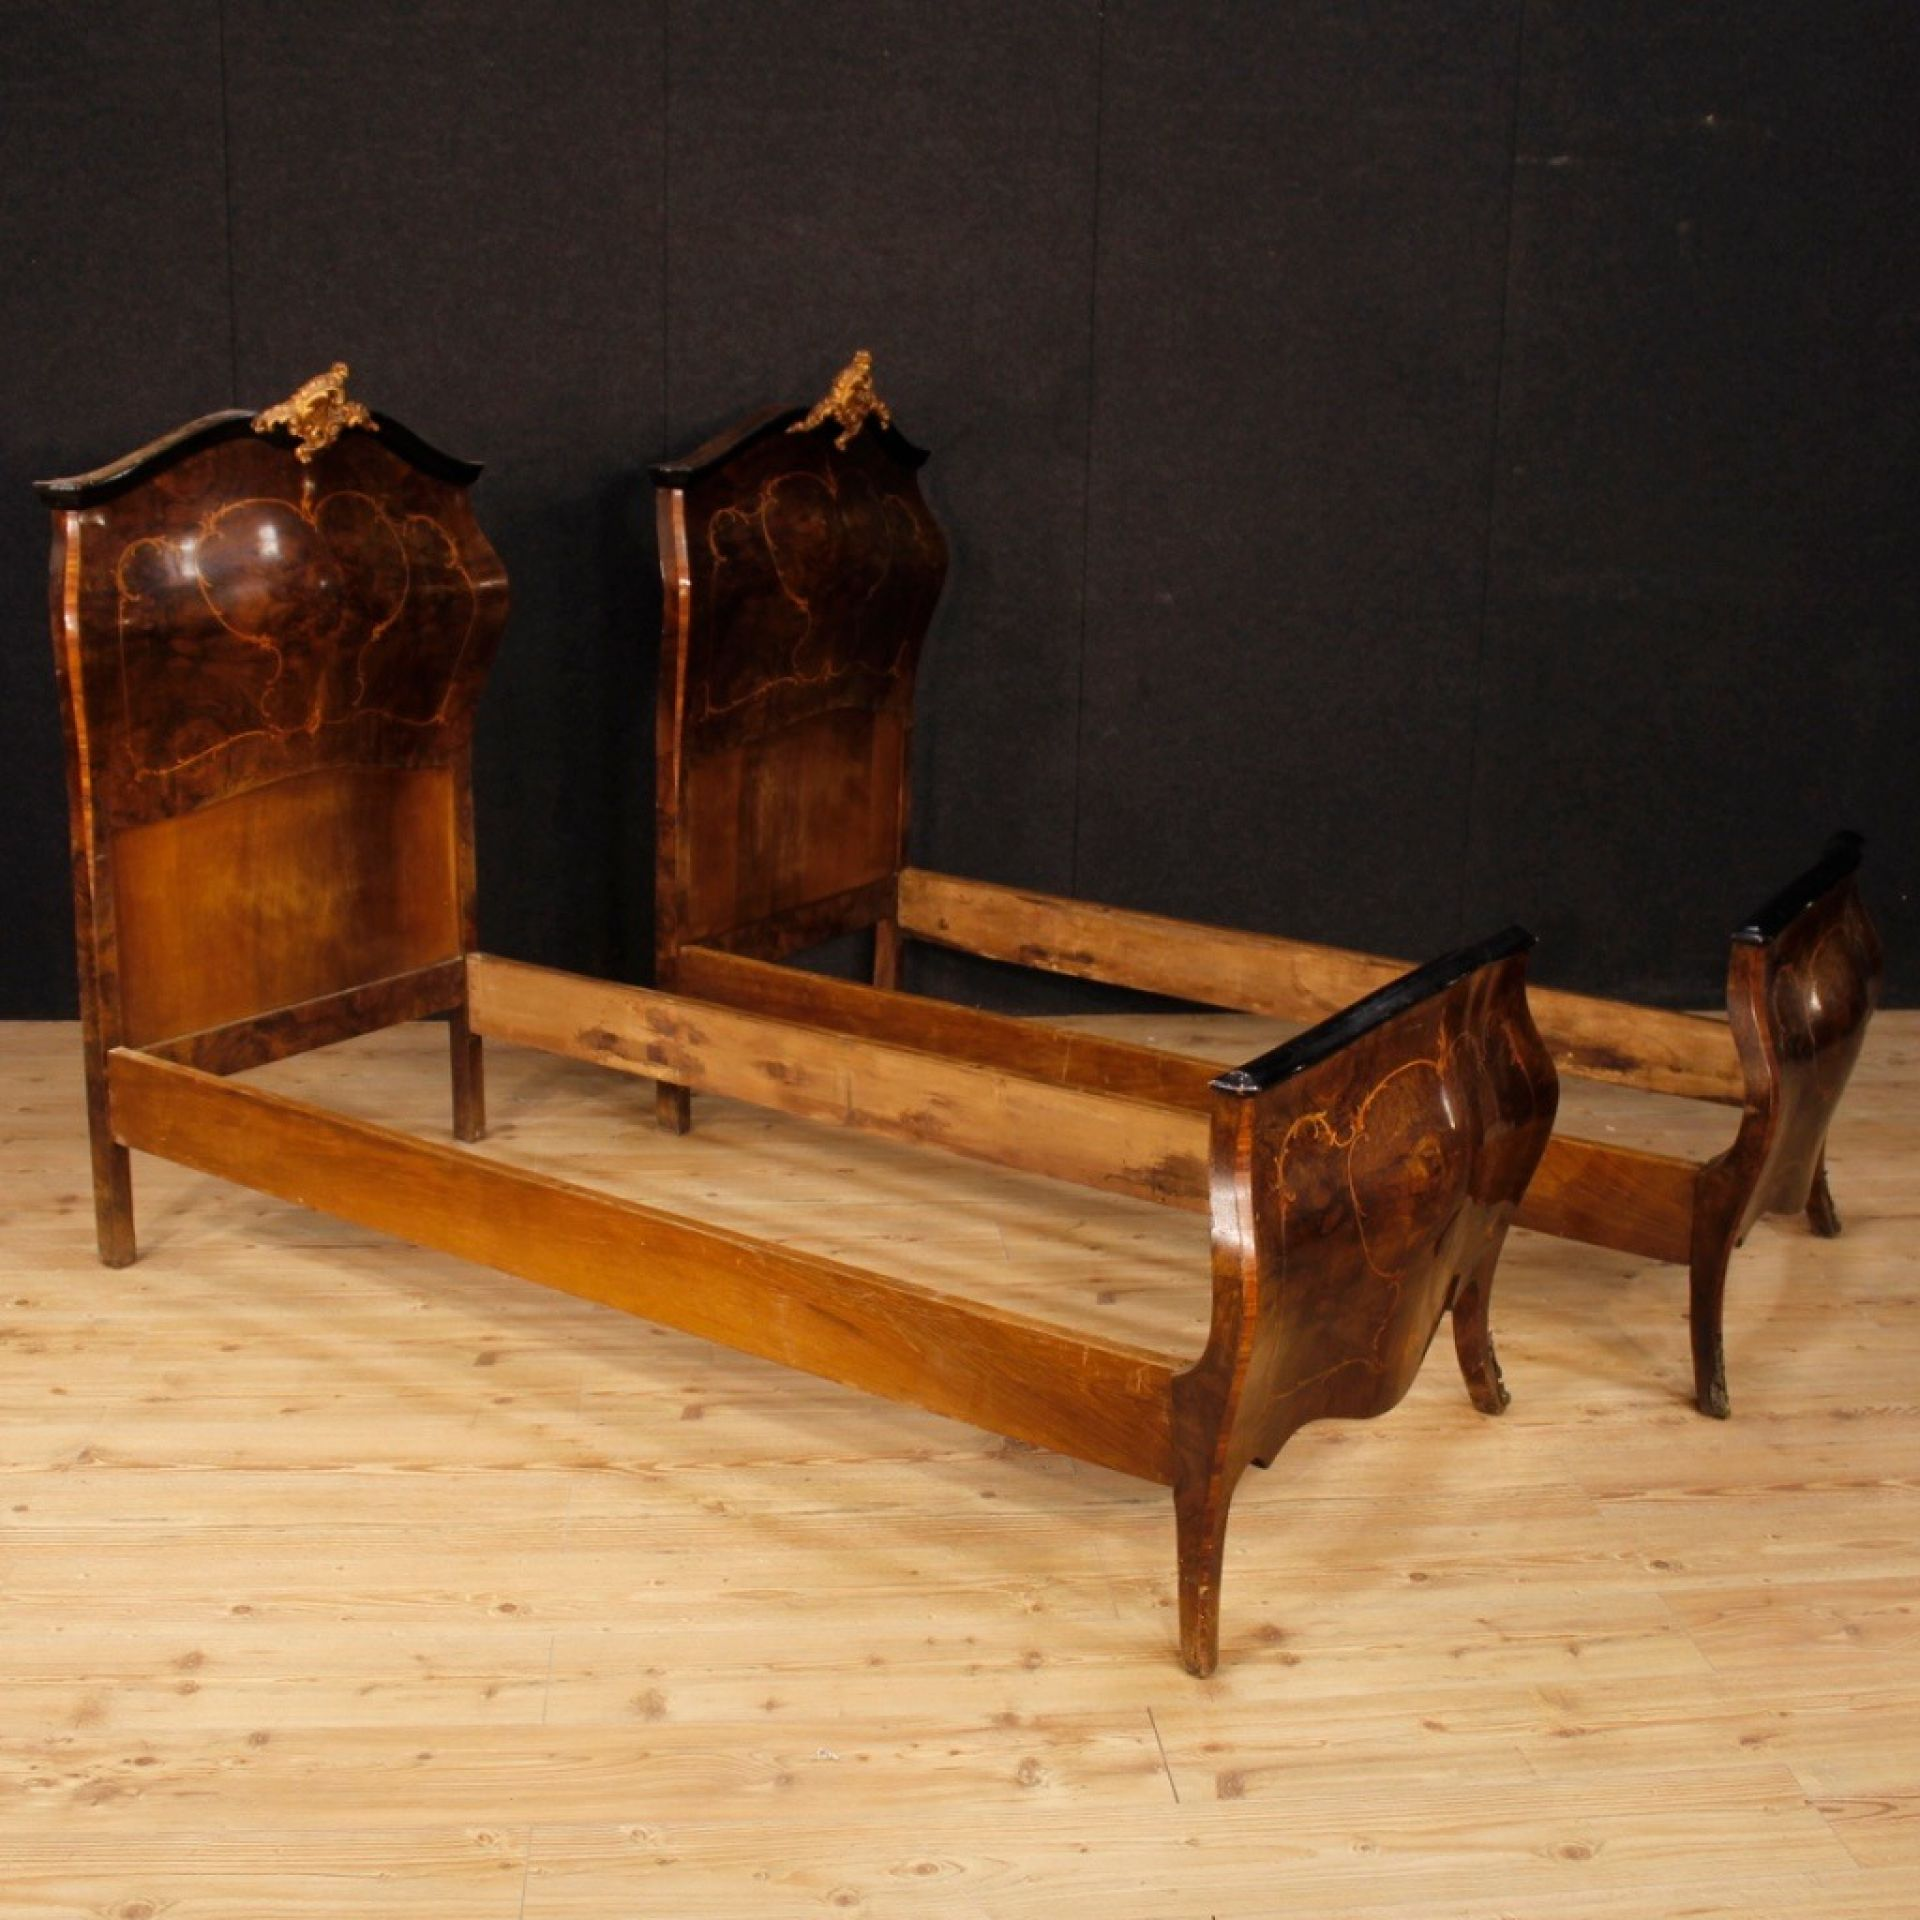 20th Century Wooden Italian Pair Of Sigle Beds, 1950